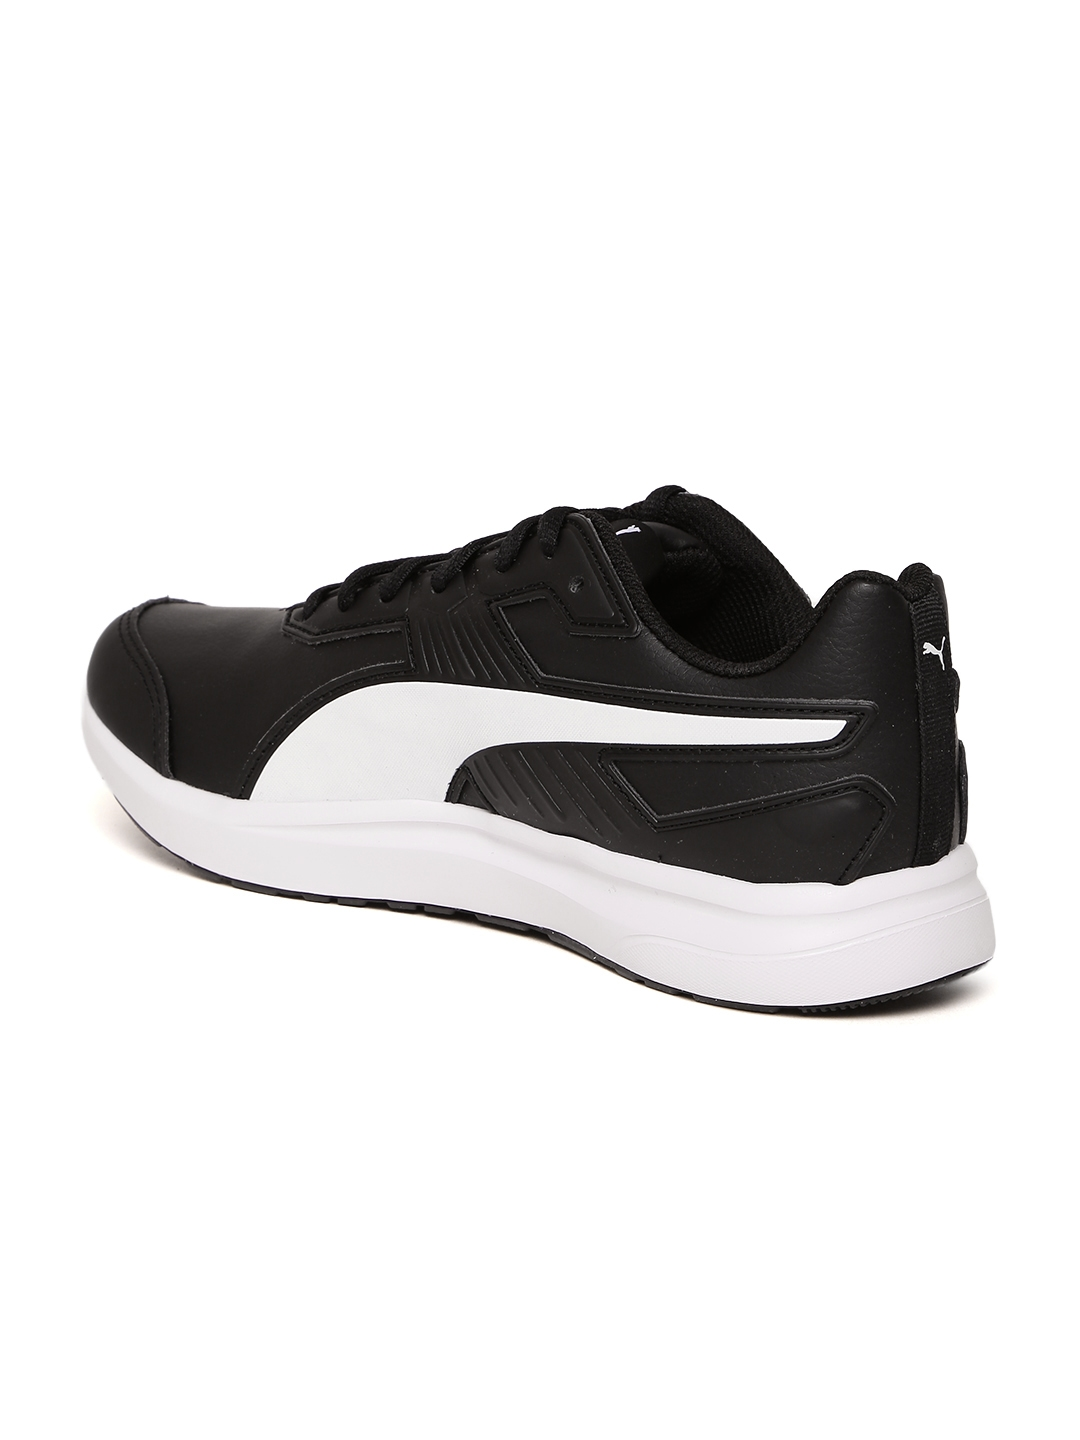 854953b07e6f2f Buy Puma Men Black Escaper SL Running Shoes - Sports Shoes for Men ...